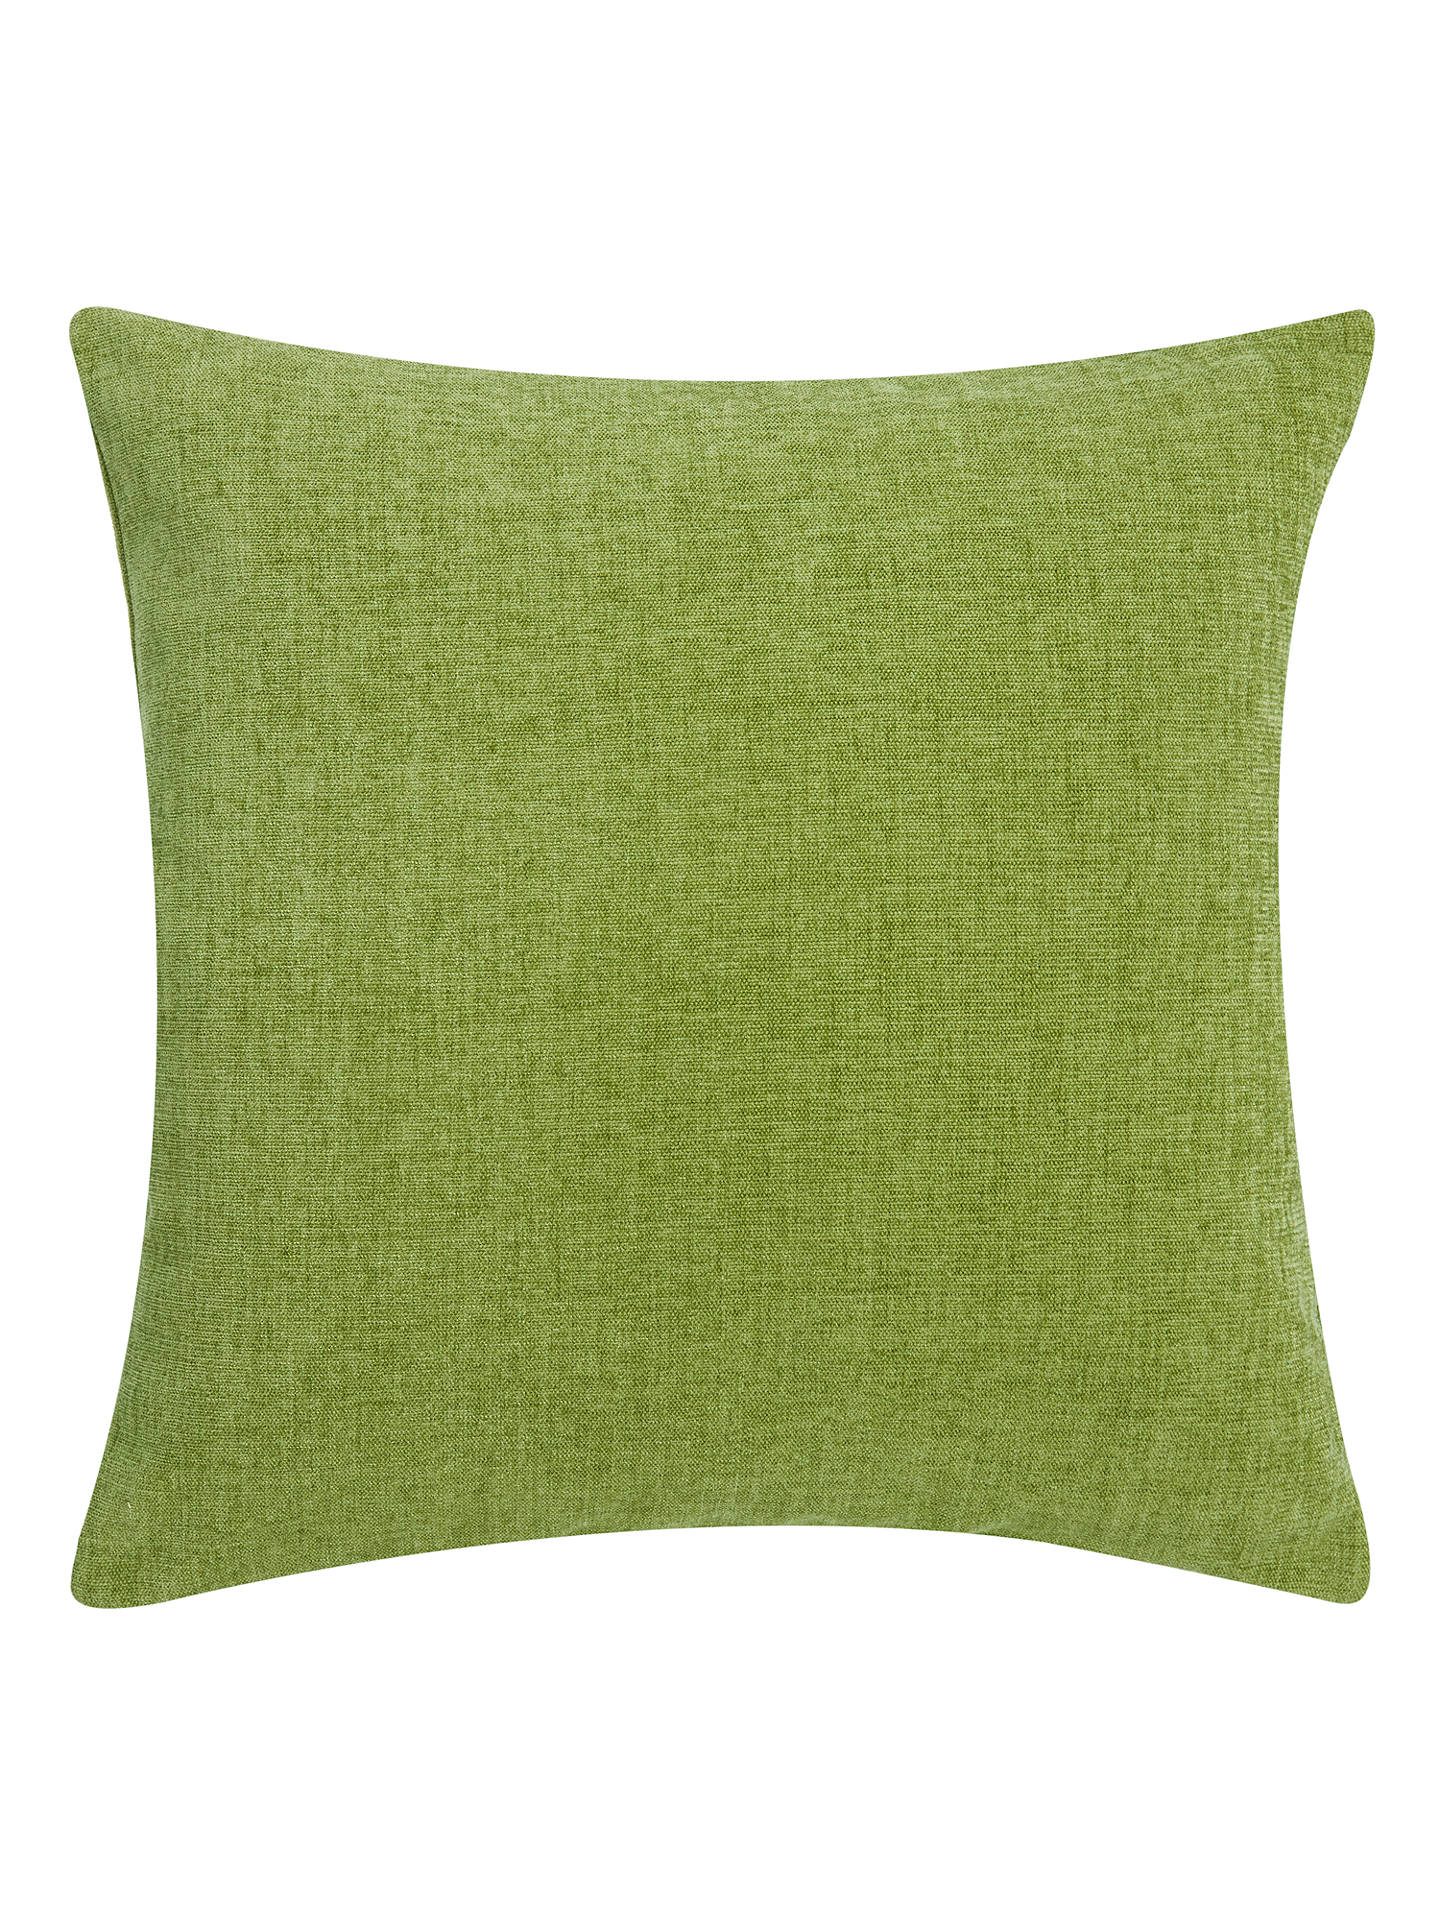 Buy John Lewis & Partners Chenille Cushion, Moss Online at johnlewis.com